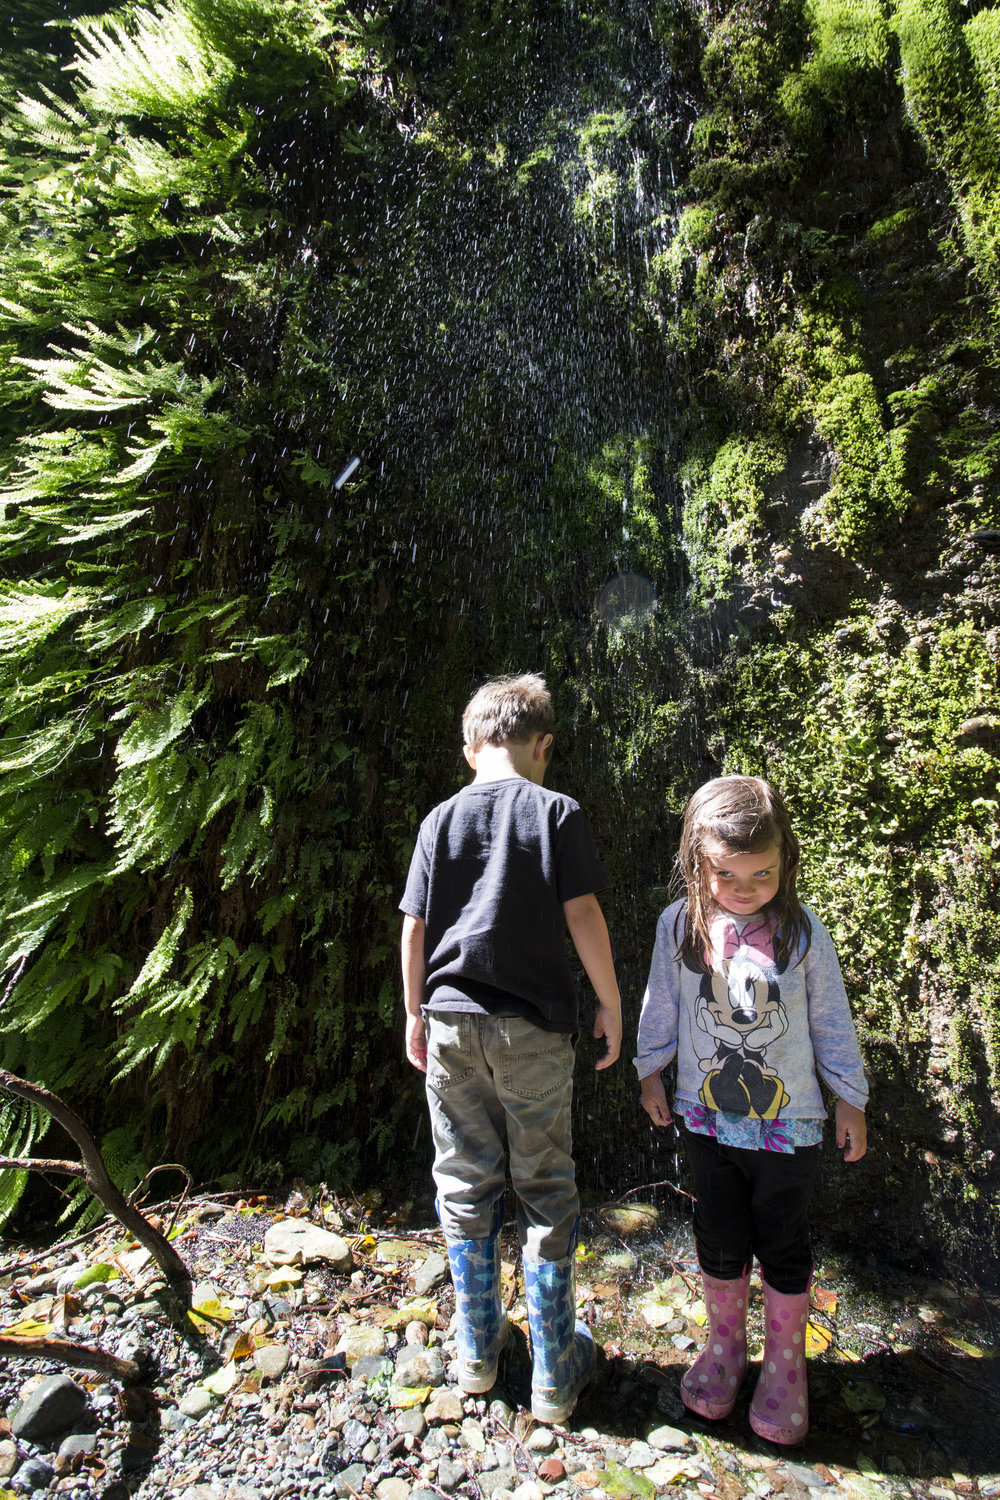 Springs and small waterfalls line the fern covered hillsides, cliffs and gullys of the northern sections of the Redwood Parks.